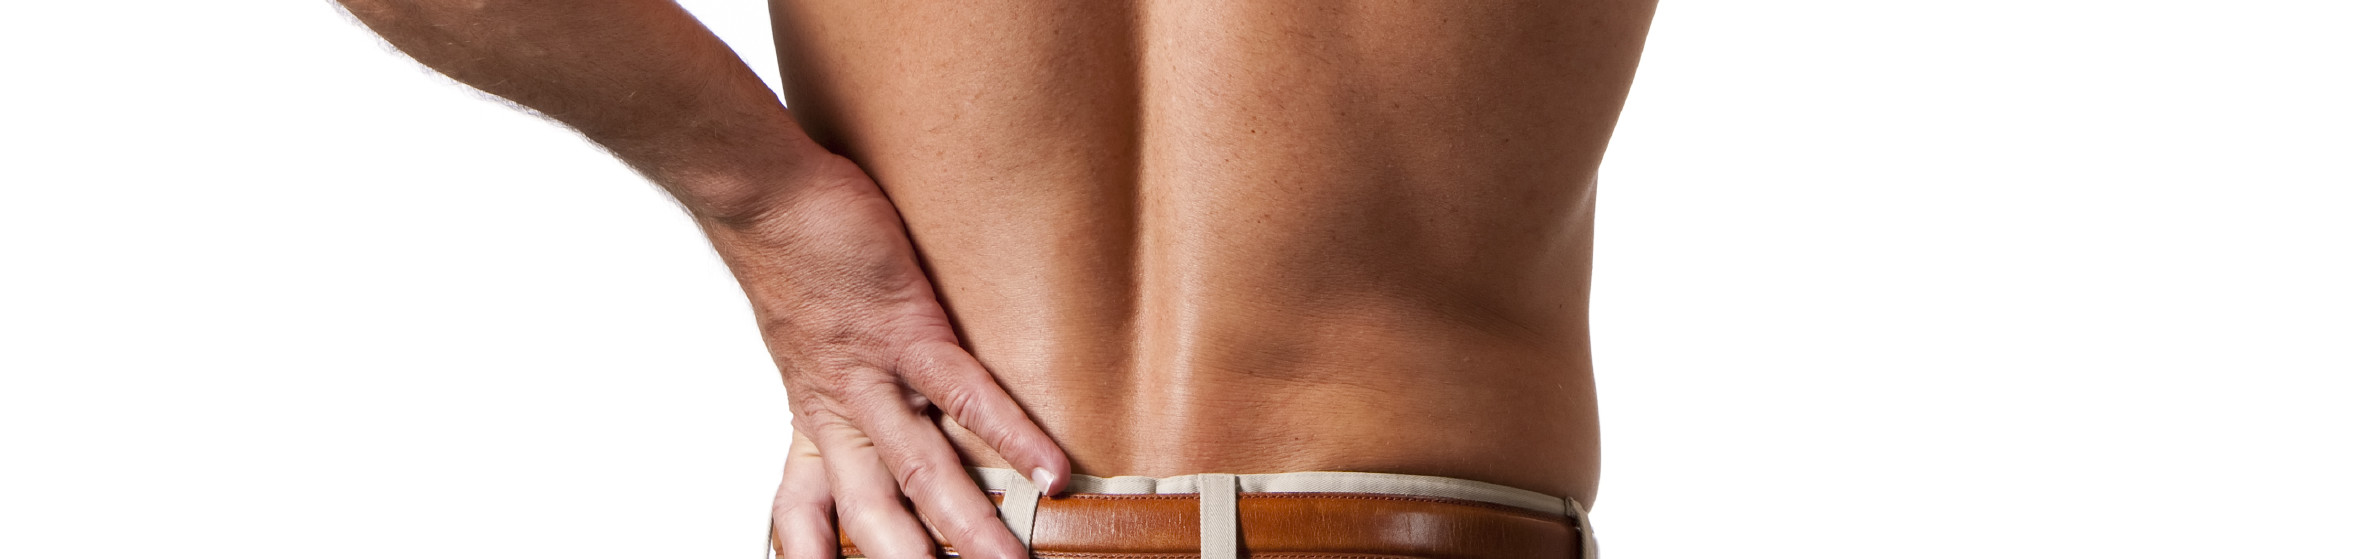 Cork Acupuncture Pain Relief